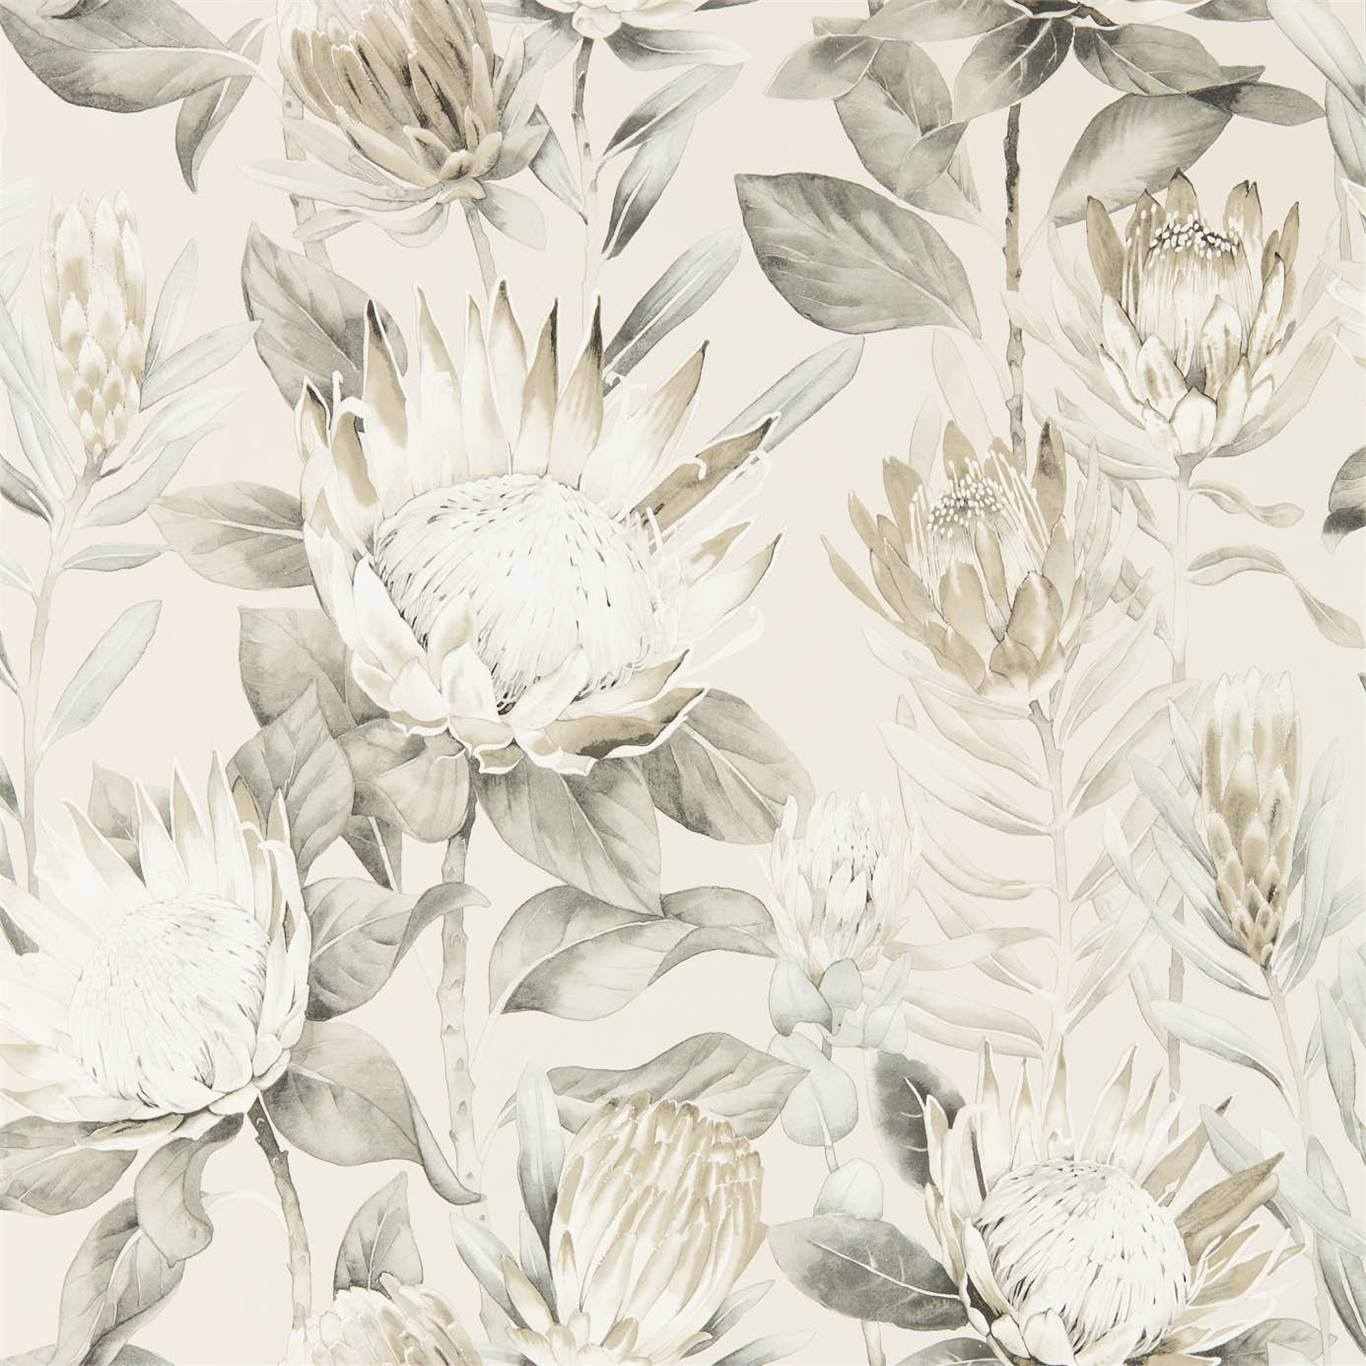 King Protea by SAN